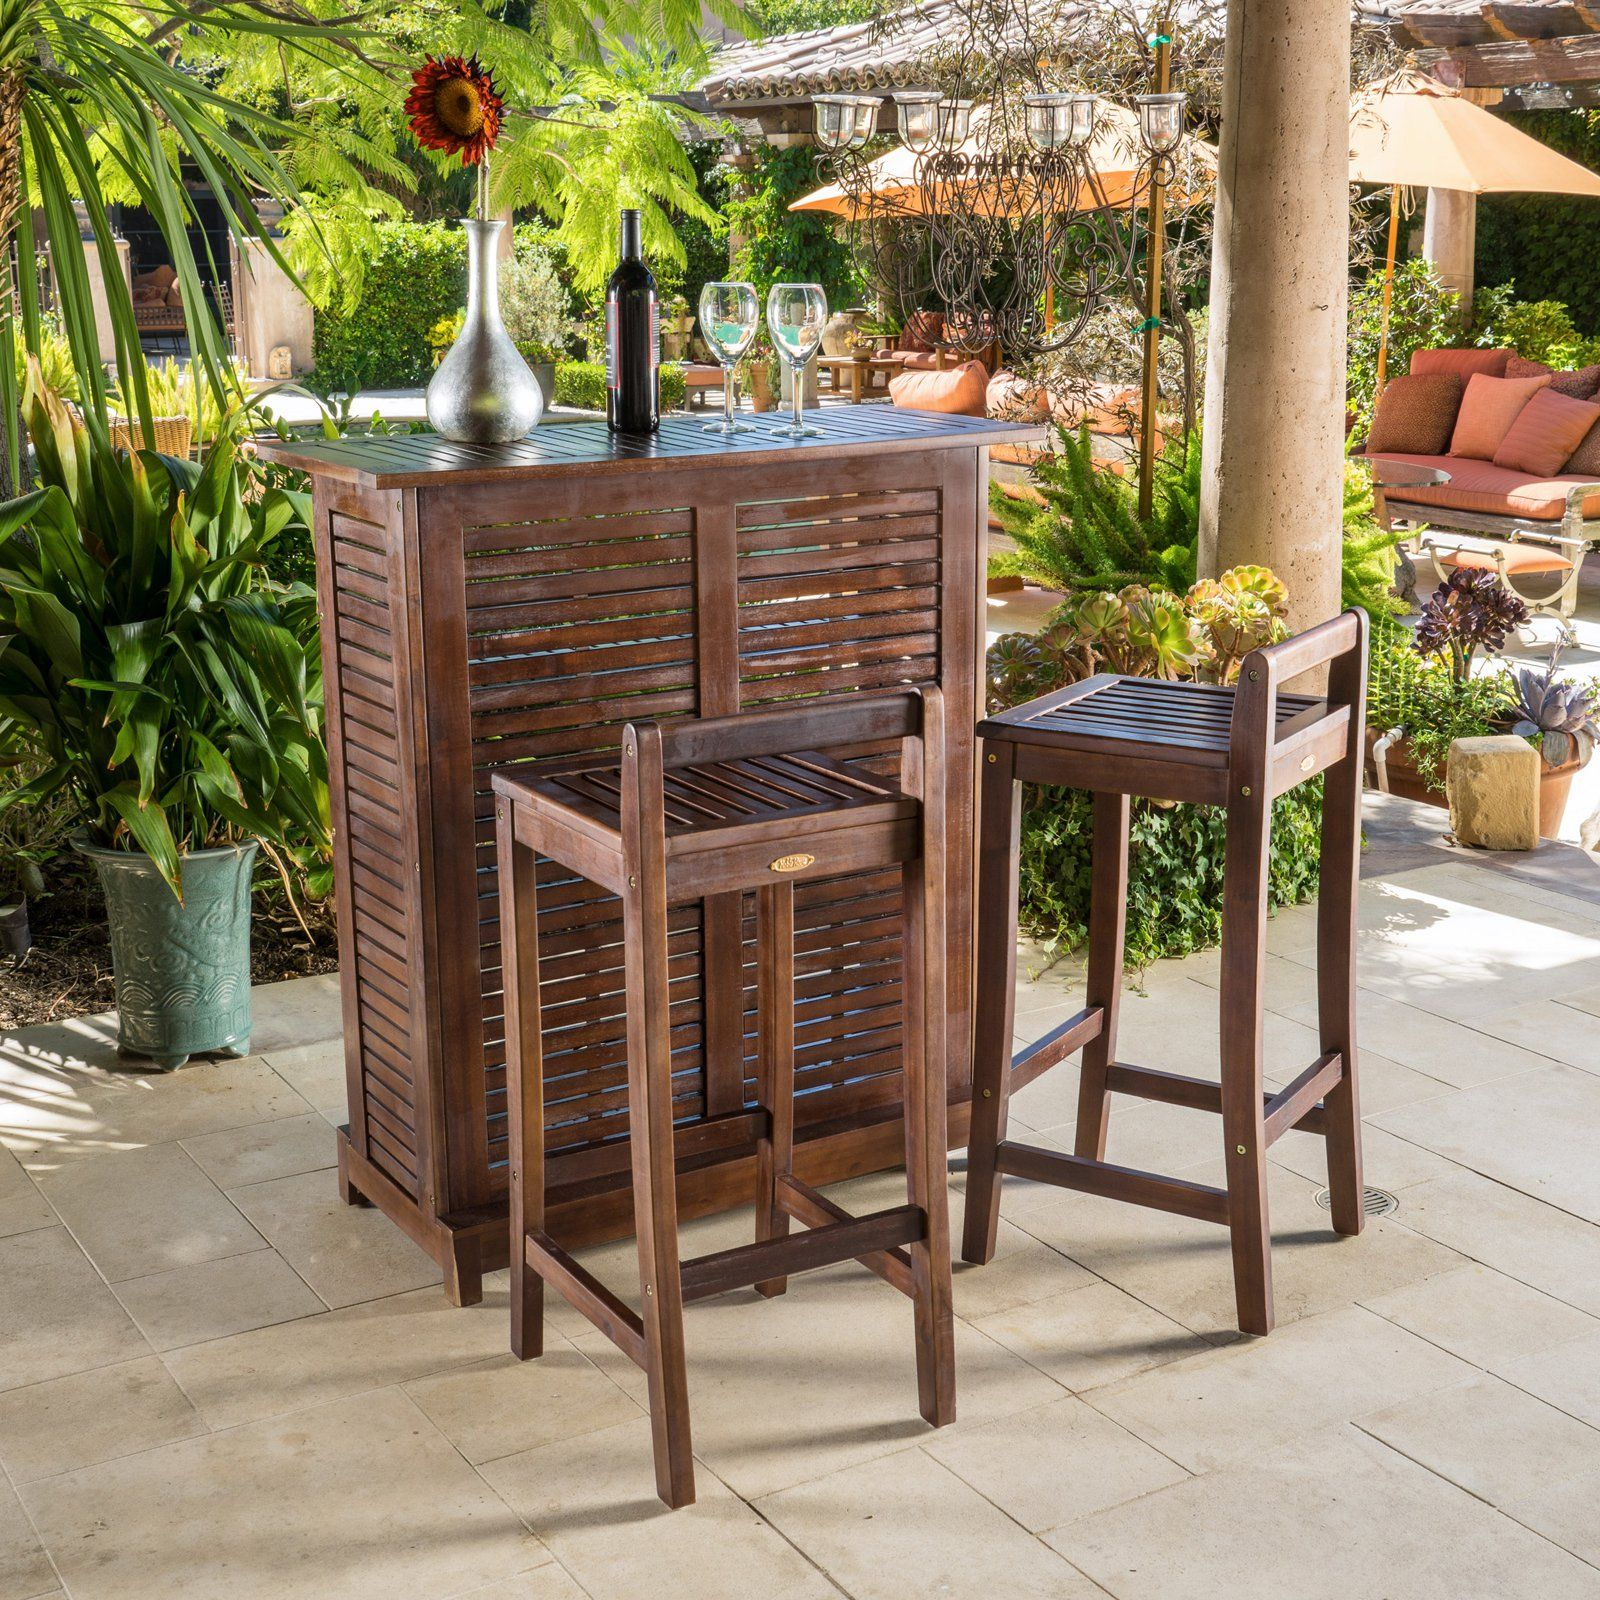 Patio Garden Outdoor Wood Bar Patio Bar Set Outdoor Bar Sets